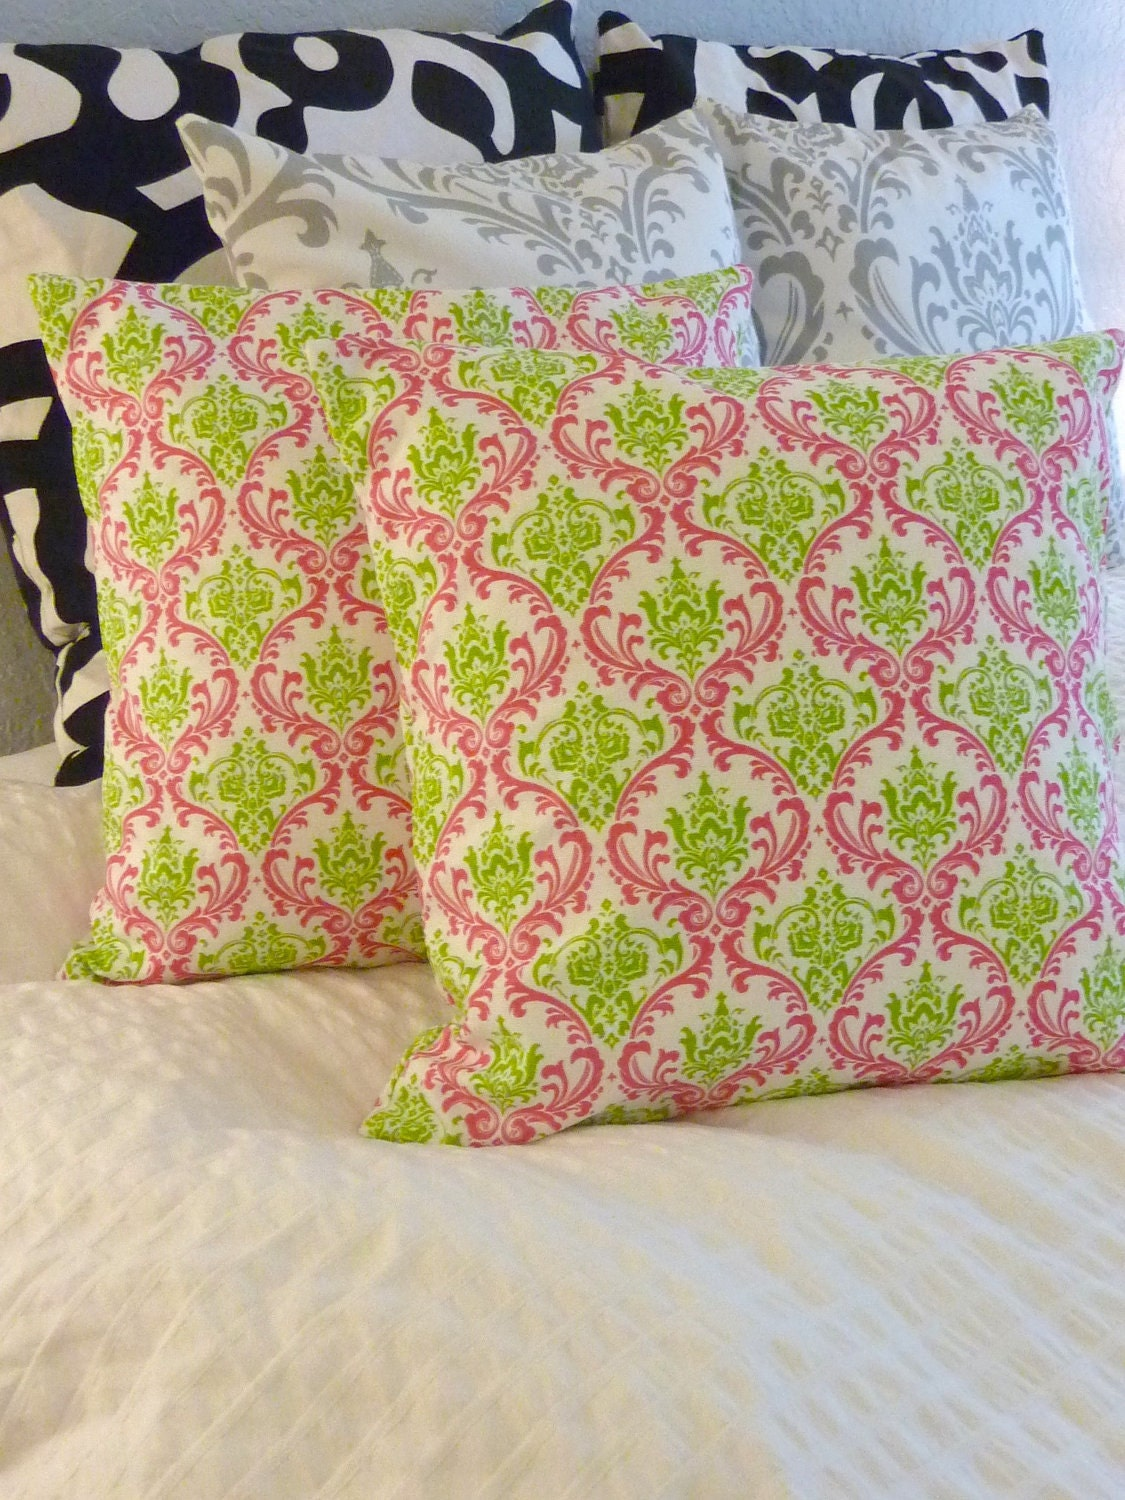 Decorative Pillows Cover- Premier Prints- Madison Candy Pink -  TWO 16x16